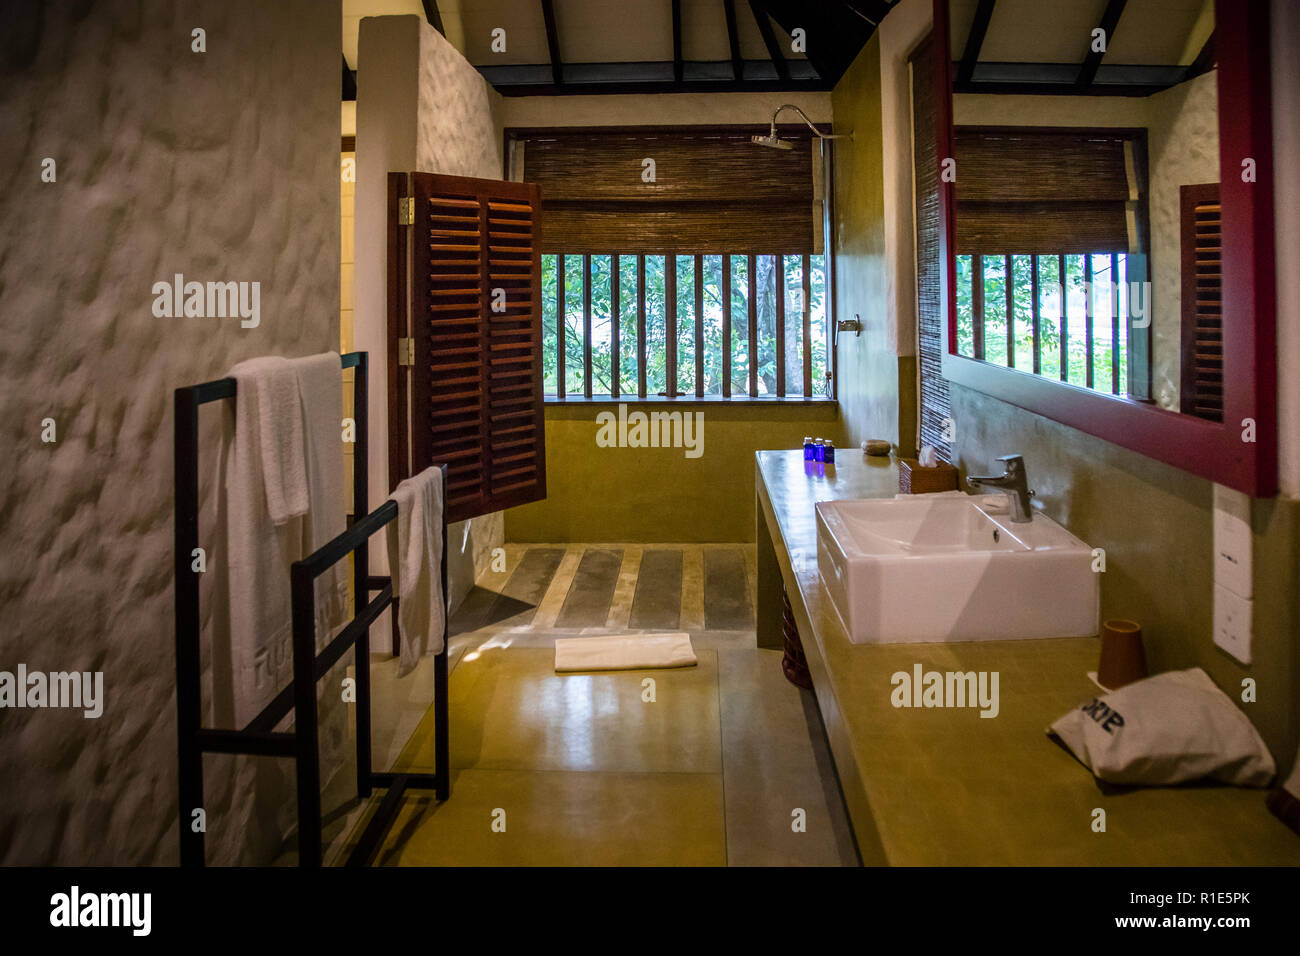 Hotel in Sri Lanka - Stock Image